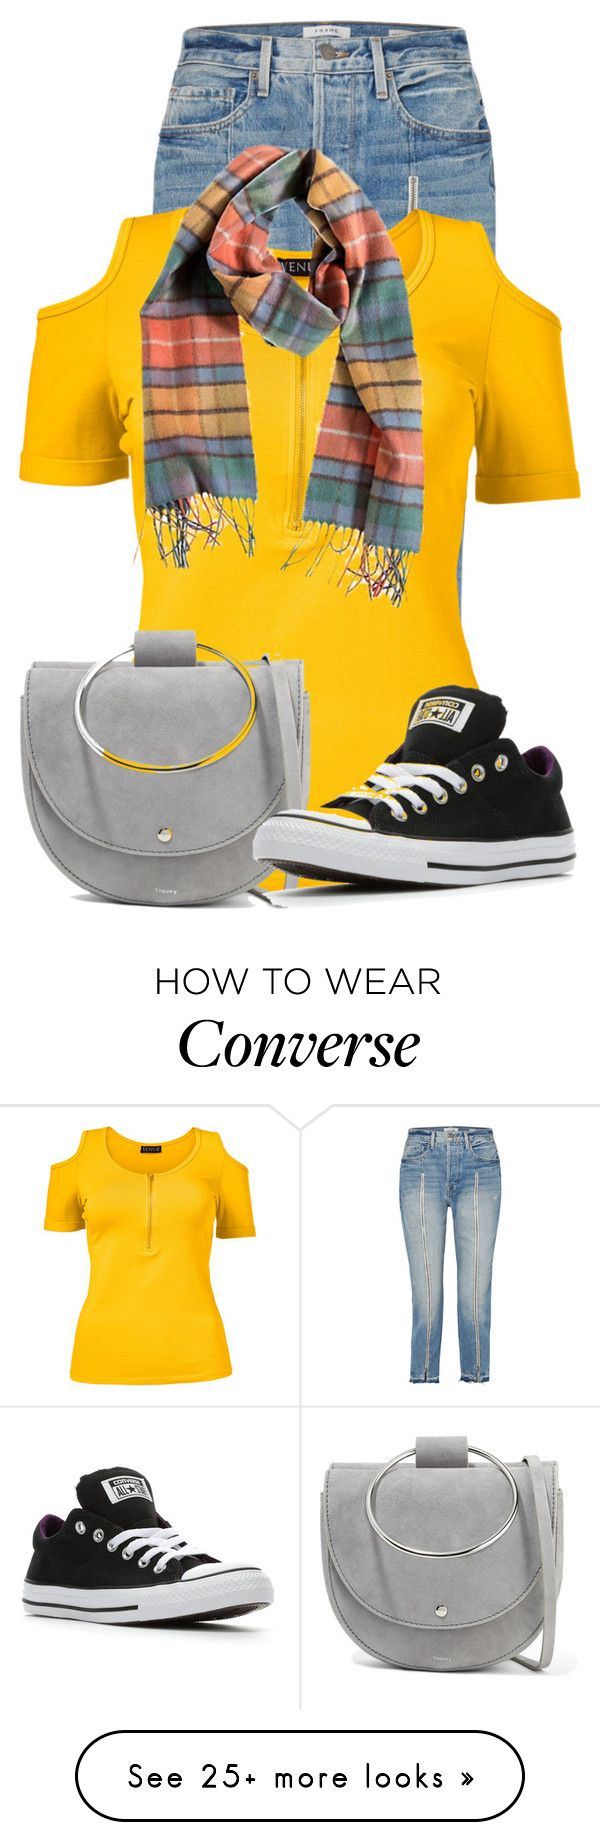 """Untitled #24455"" by nanette-253 on Polyvore featuring Frame, Venus, Overland Sheepskin Co., Theory, Converse and plus size clothing"